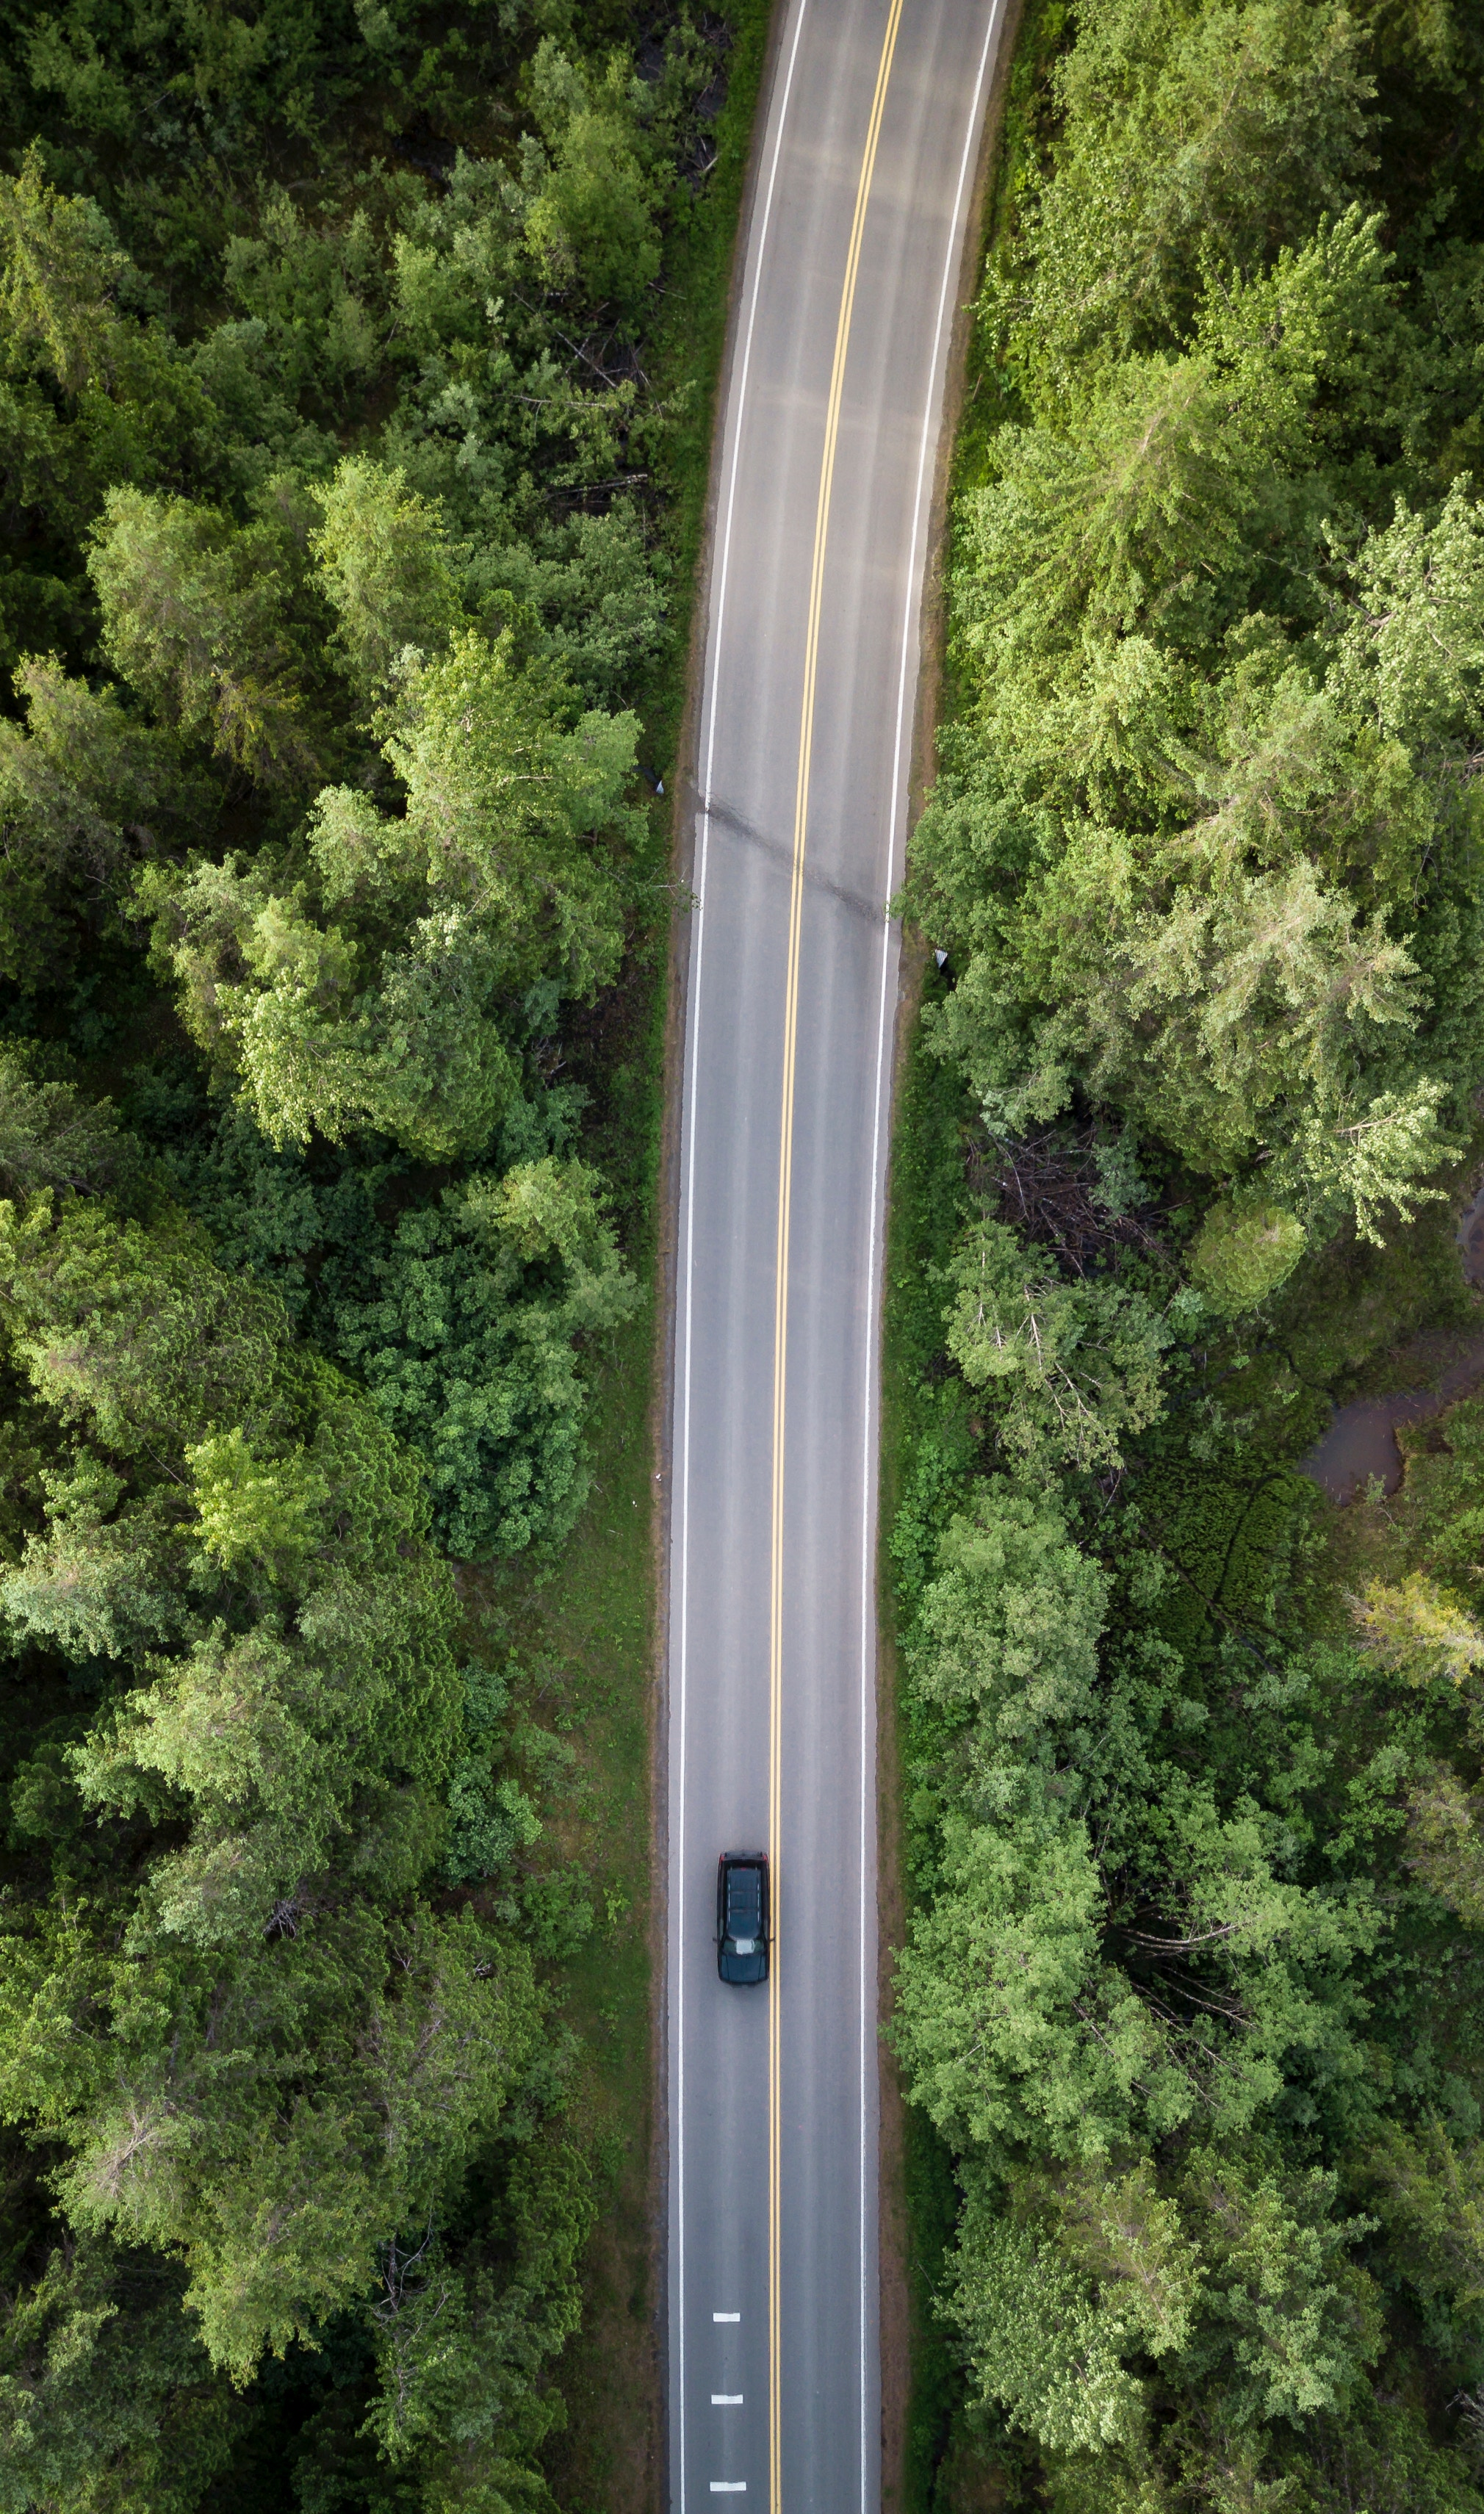 Car on road, viewed from above